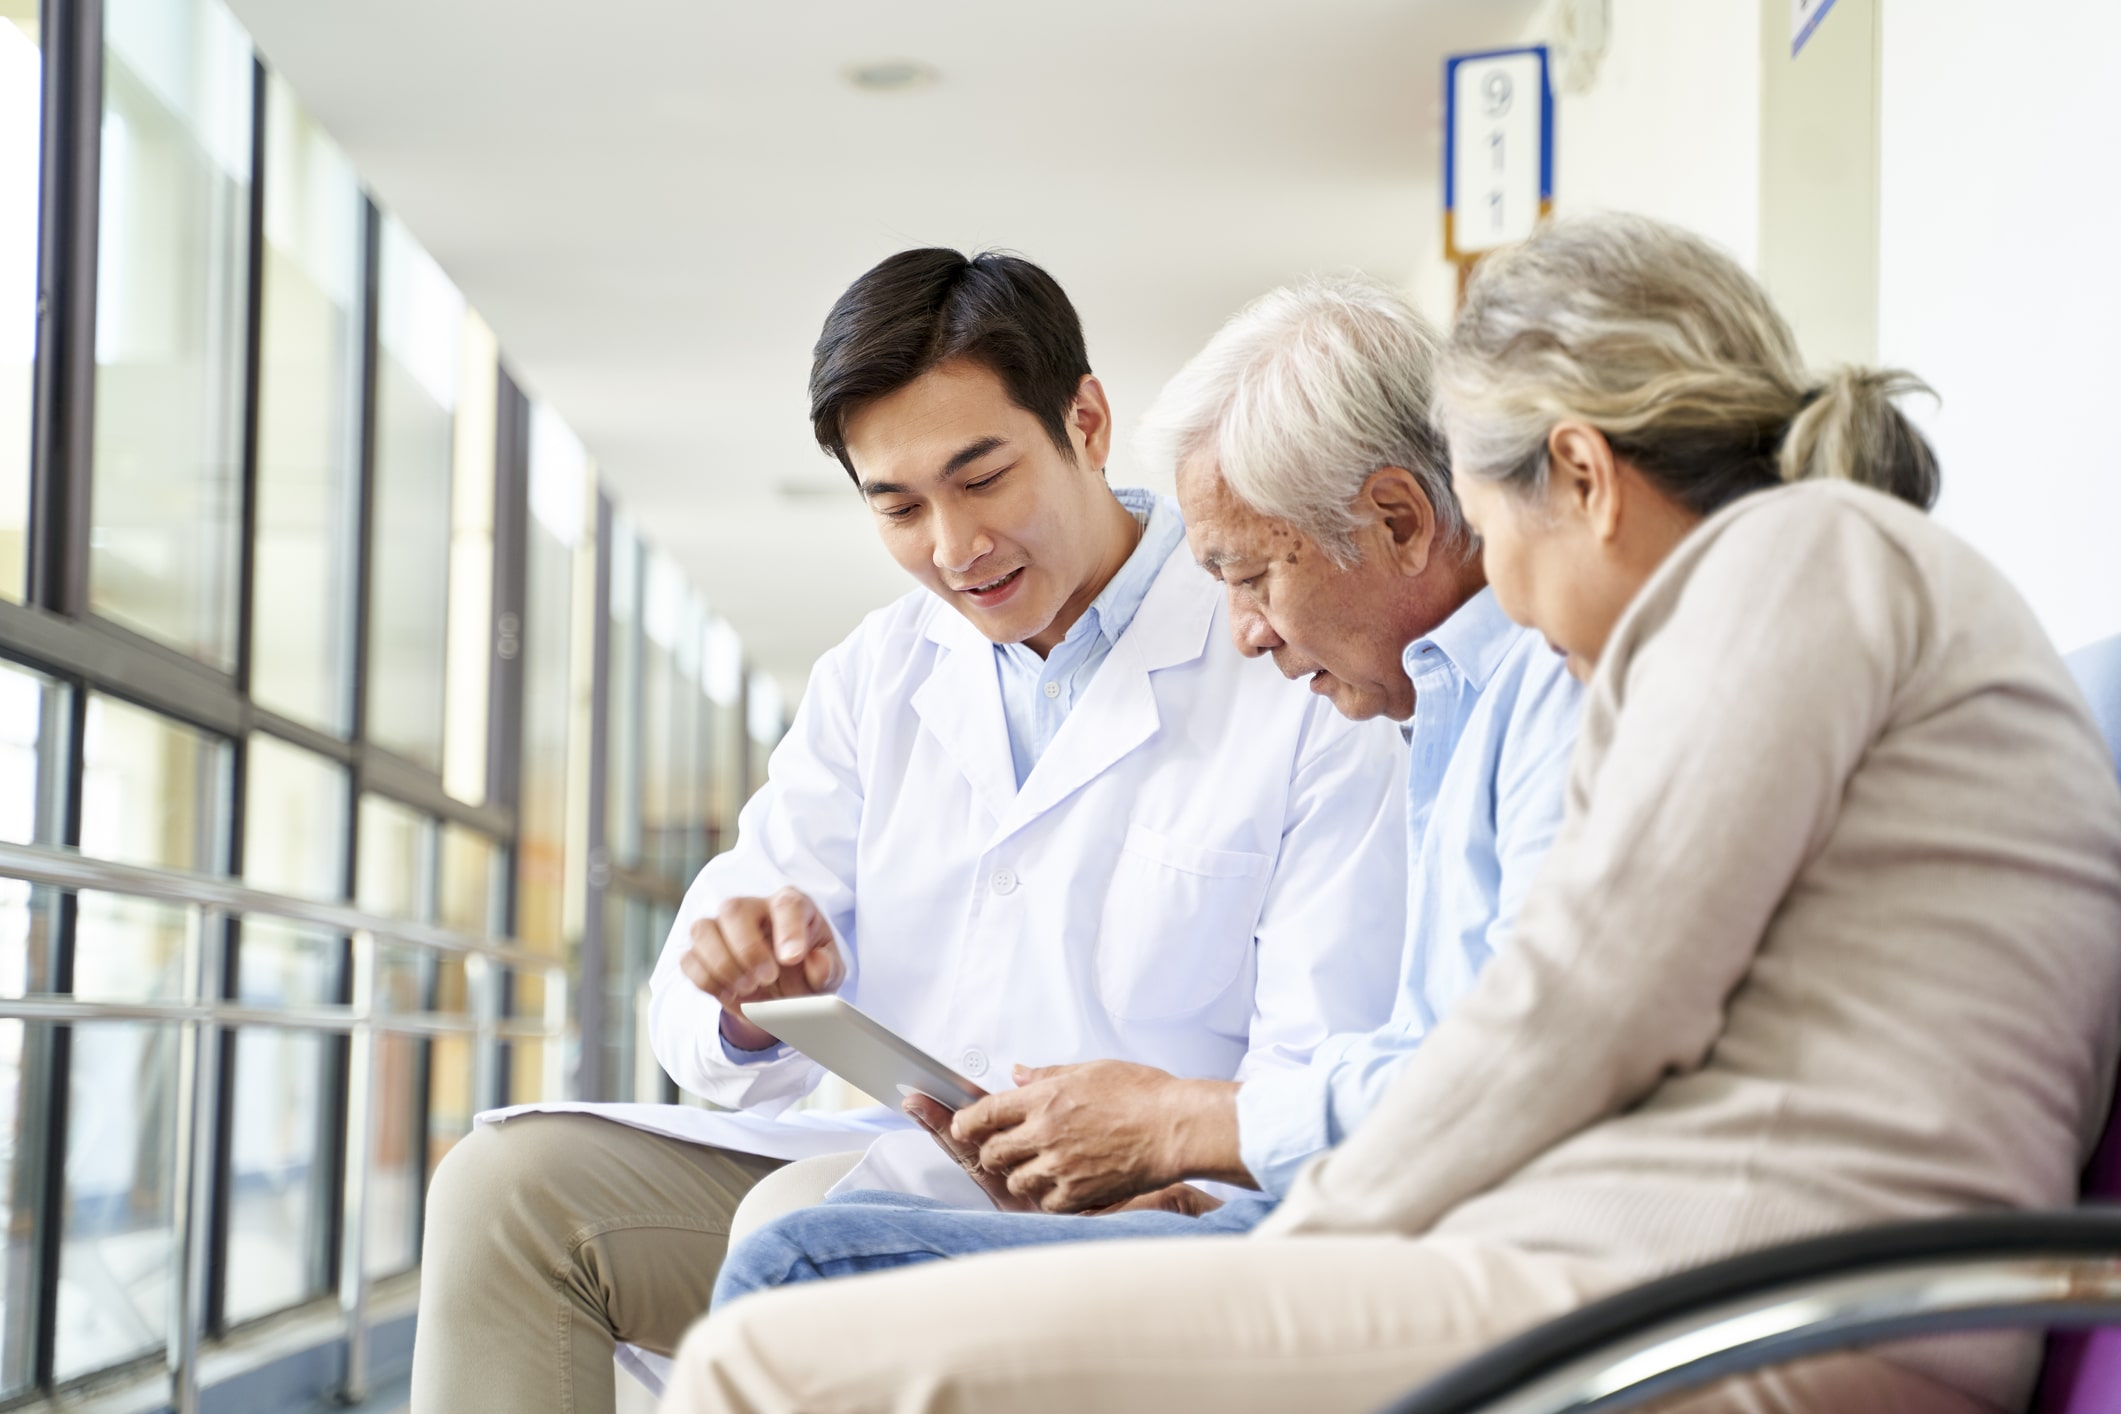 4 Ways Orthopedic Clinics Can Optimize the Patient Journey